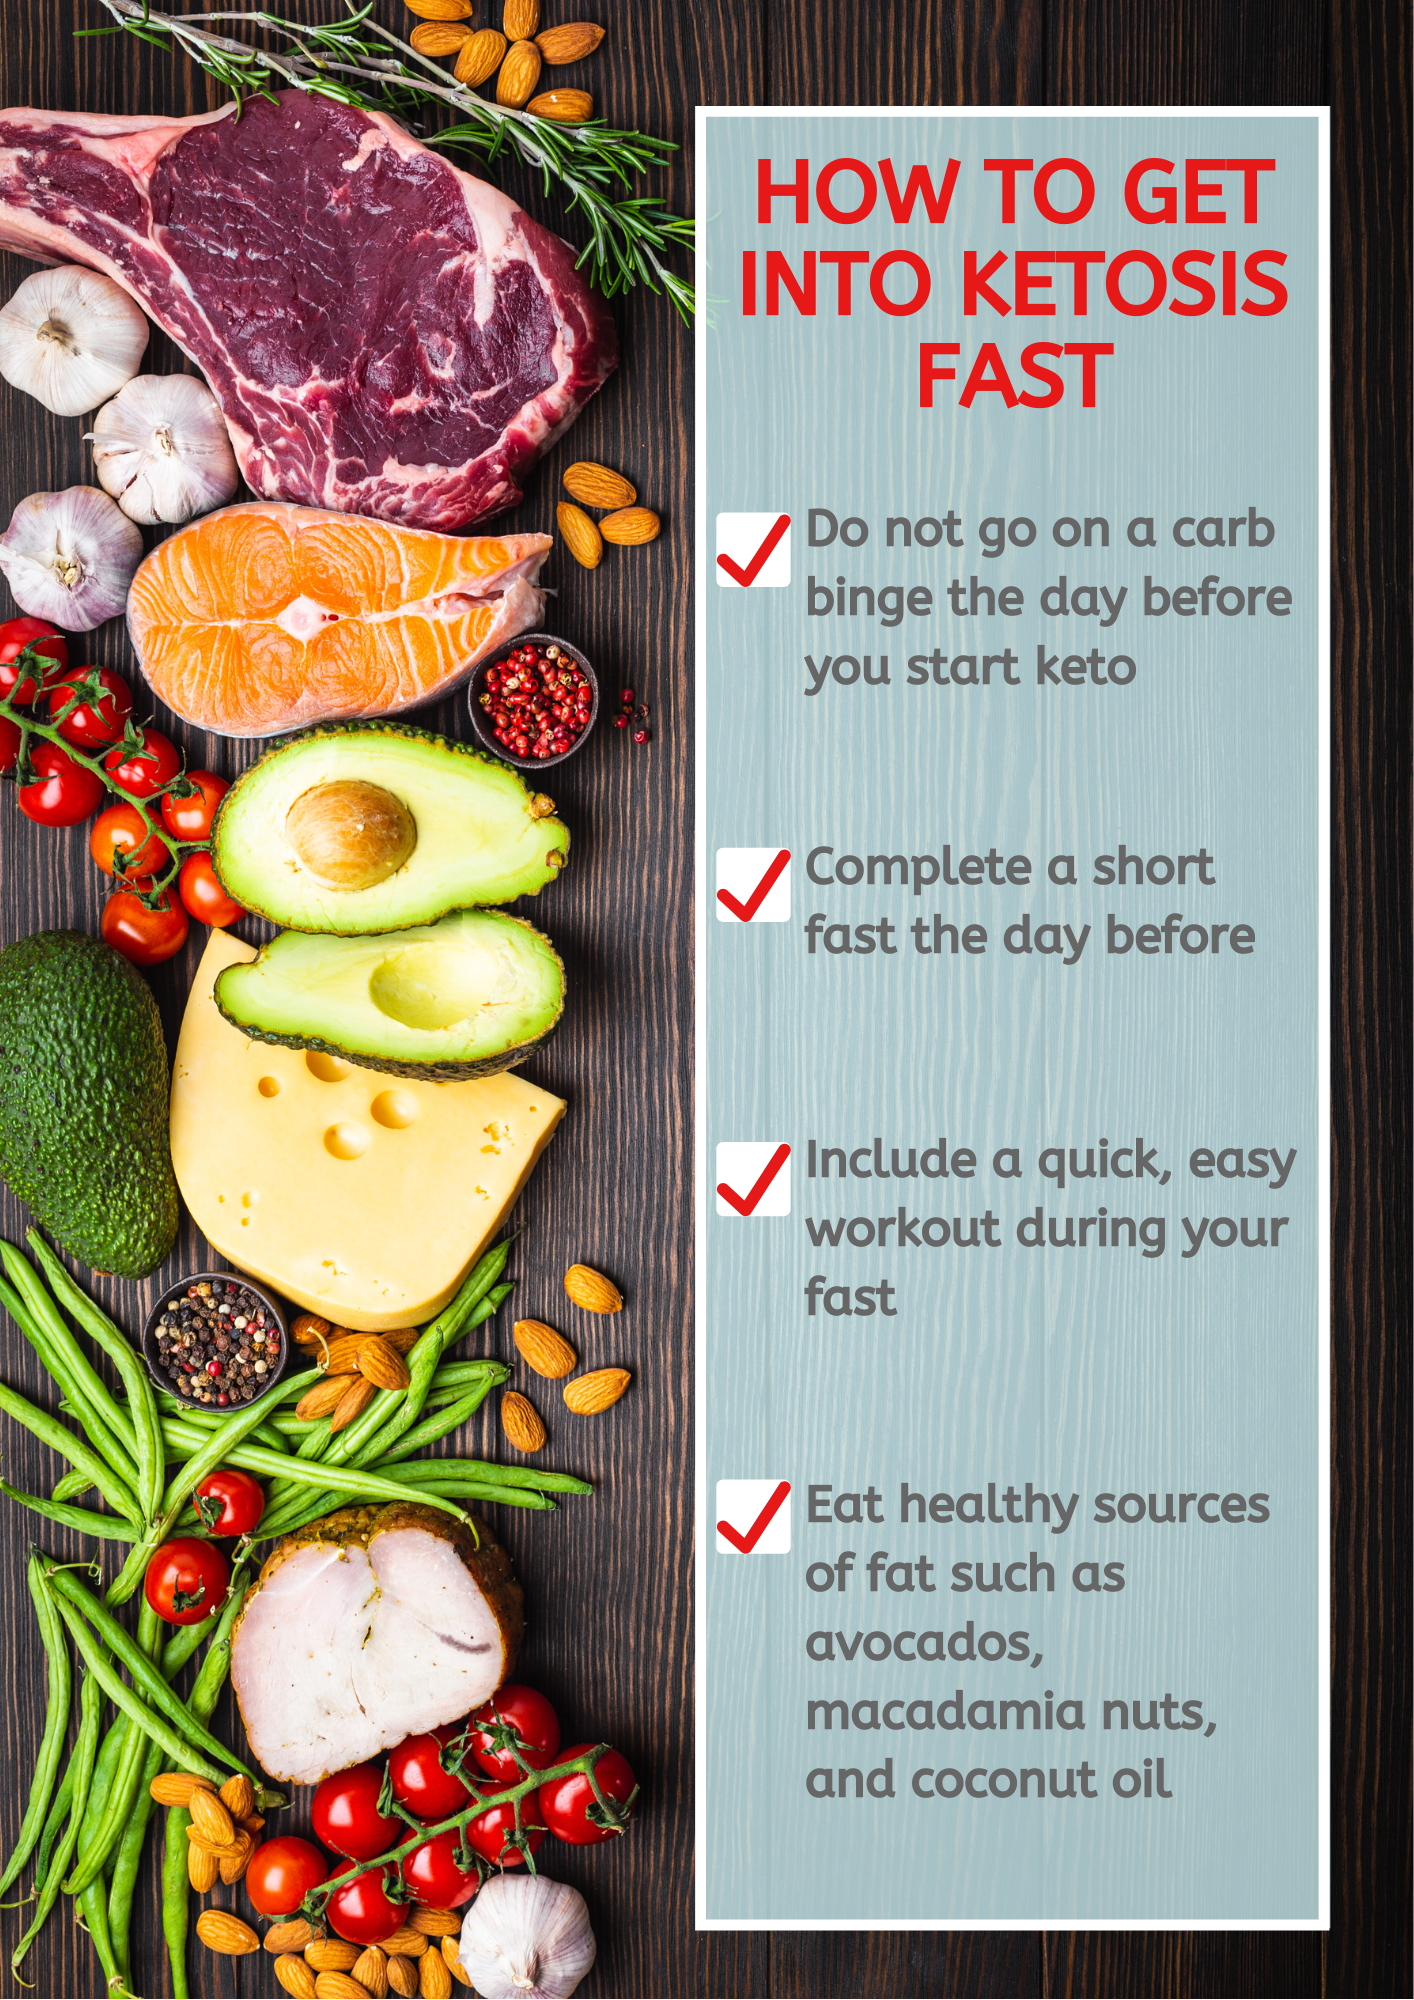 Top 4 Tips To Get Into Ketosis Fast Bethany Collaso Ketosis Fast Get Into Ketosis Fast Lentil Salad Recipes